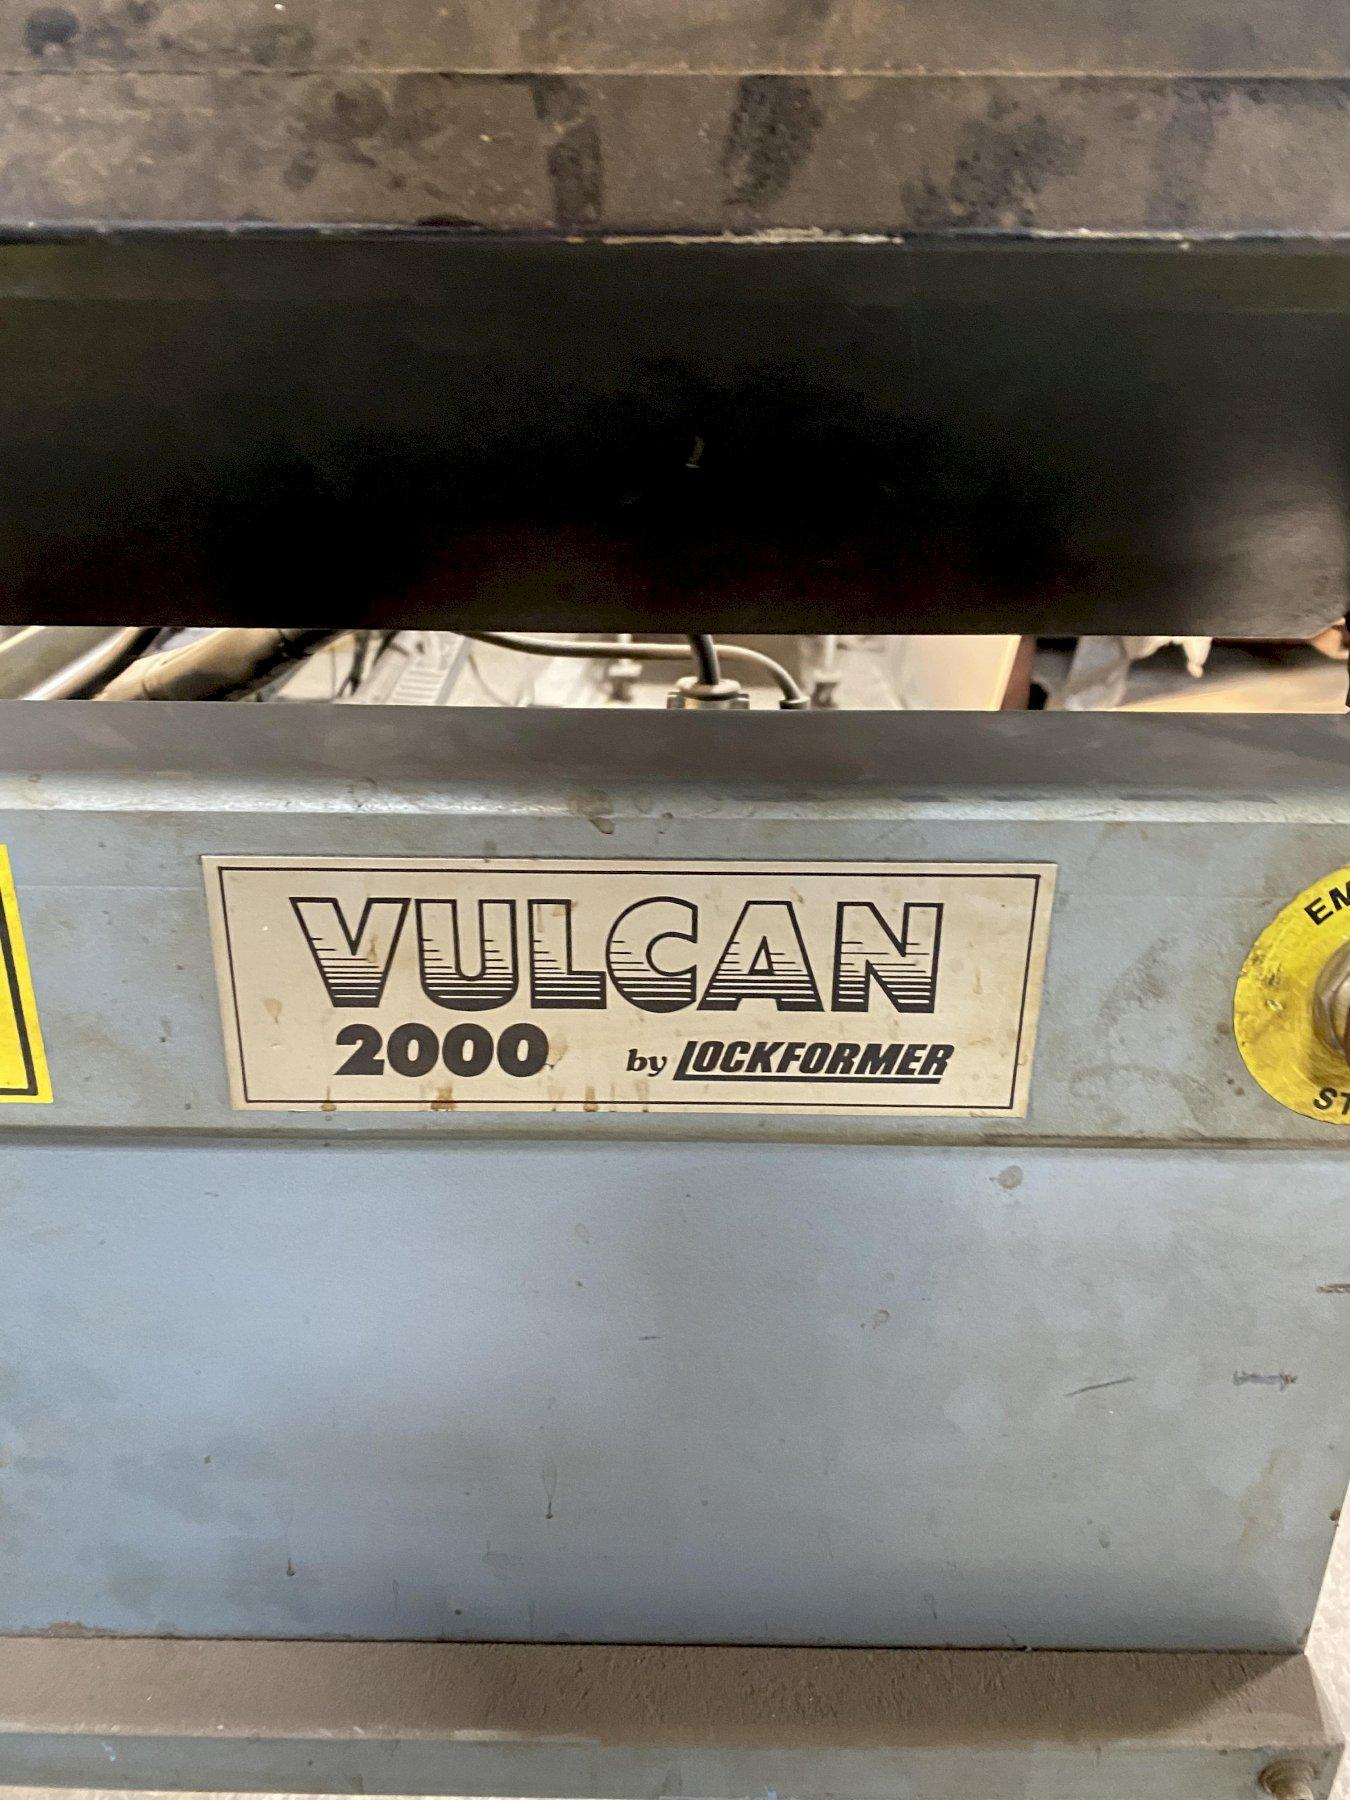 "60"" X 120"" LOCKFORMER VULCAN 2000 PLASMA CUTTING MACHINE. STOCK # 1263820"